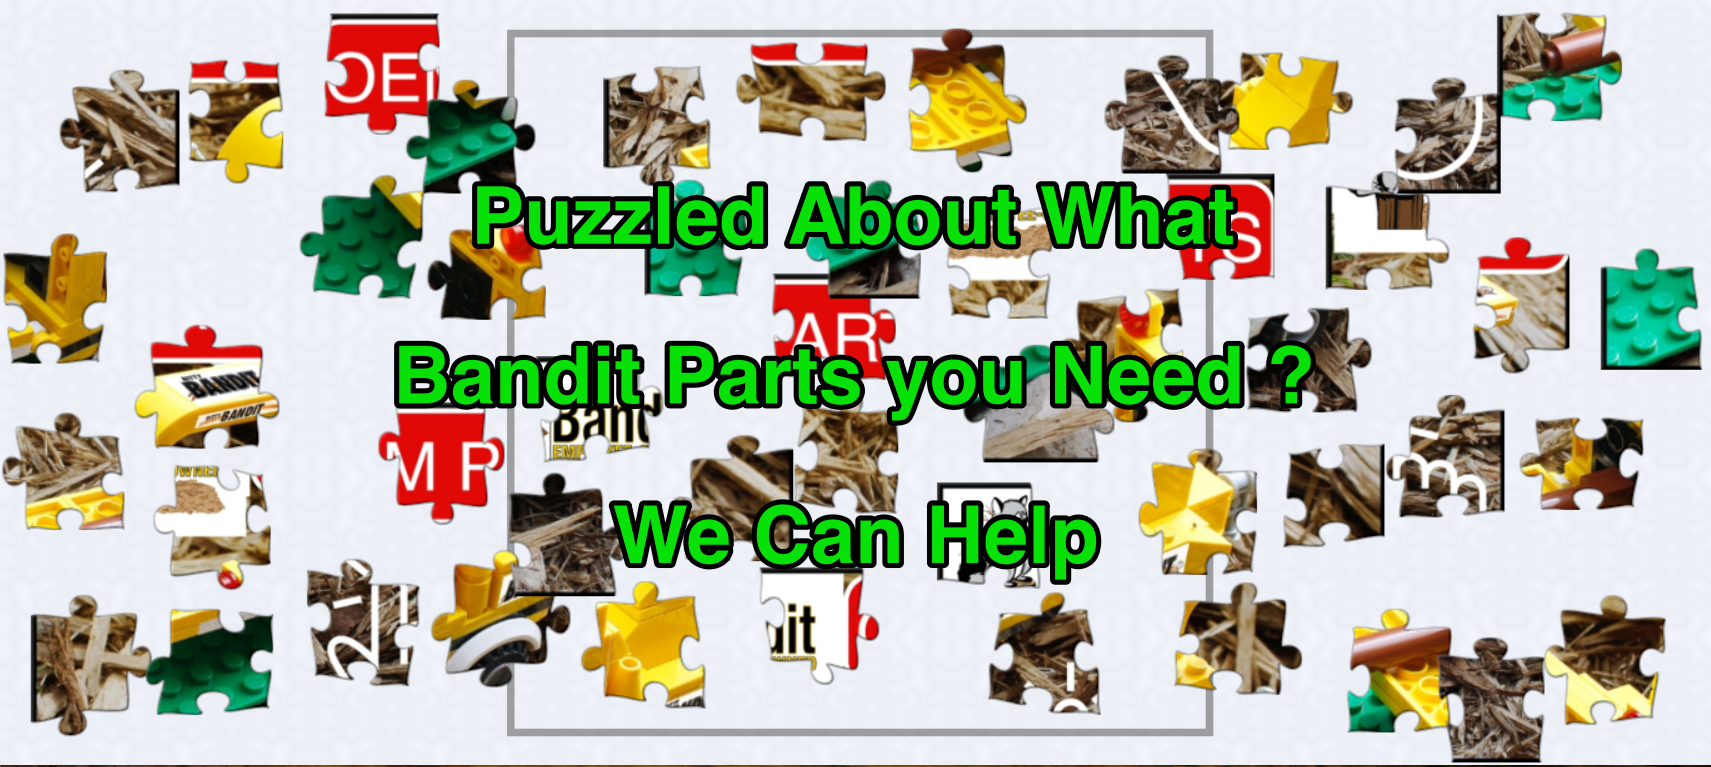 Puzzled About What Bandit Parts you Need We Can Help